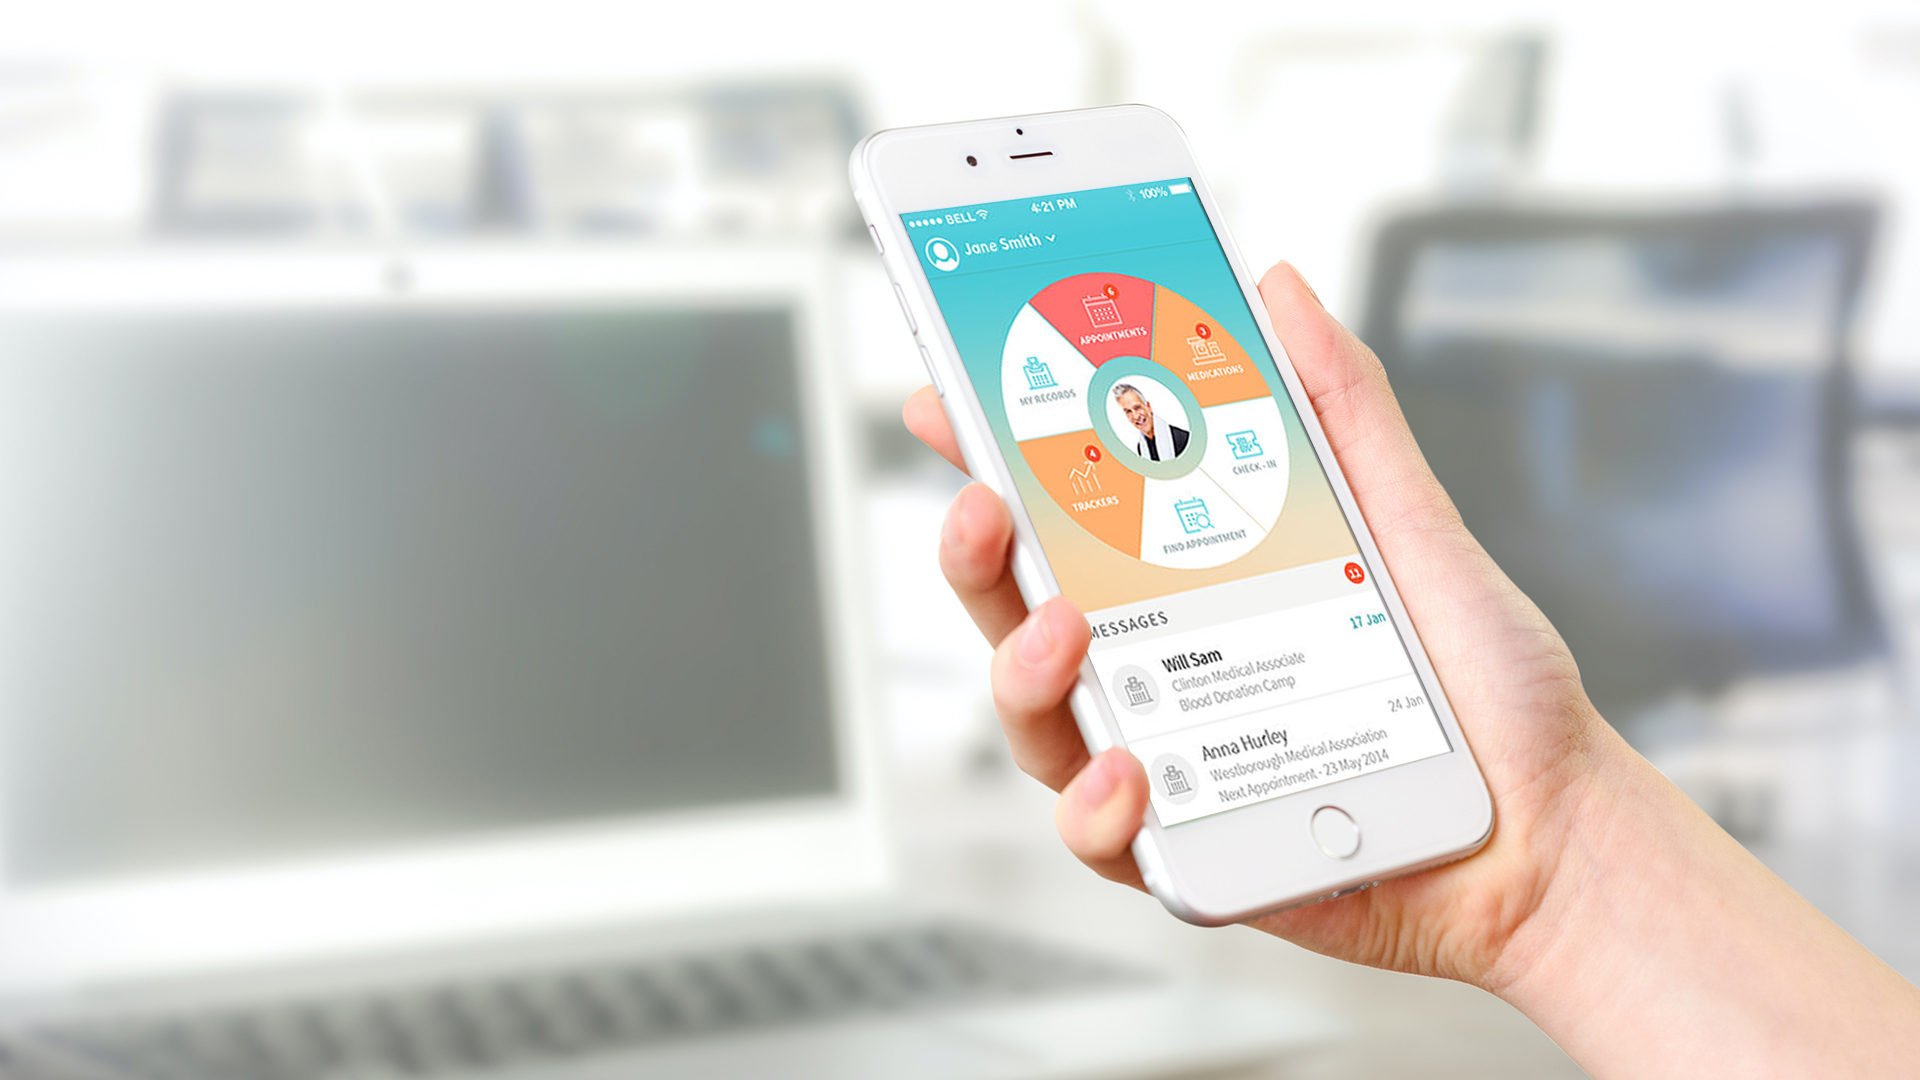 Telemedicine is easy accessible on mobile devices.